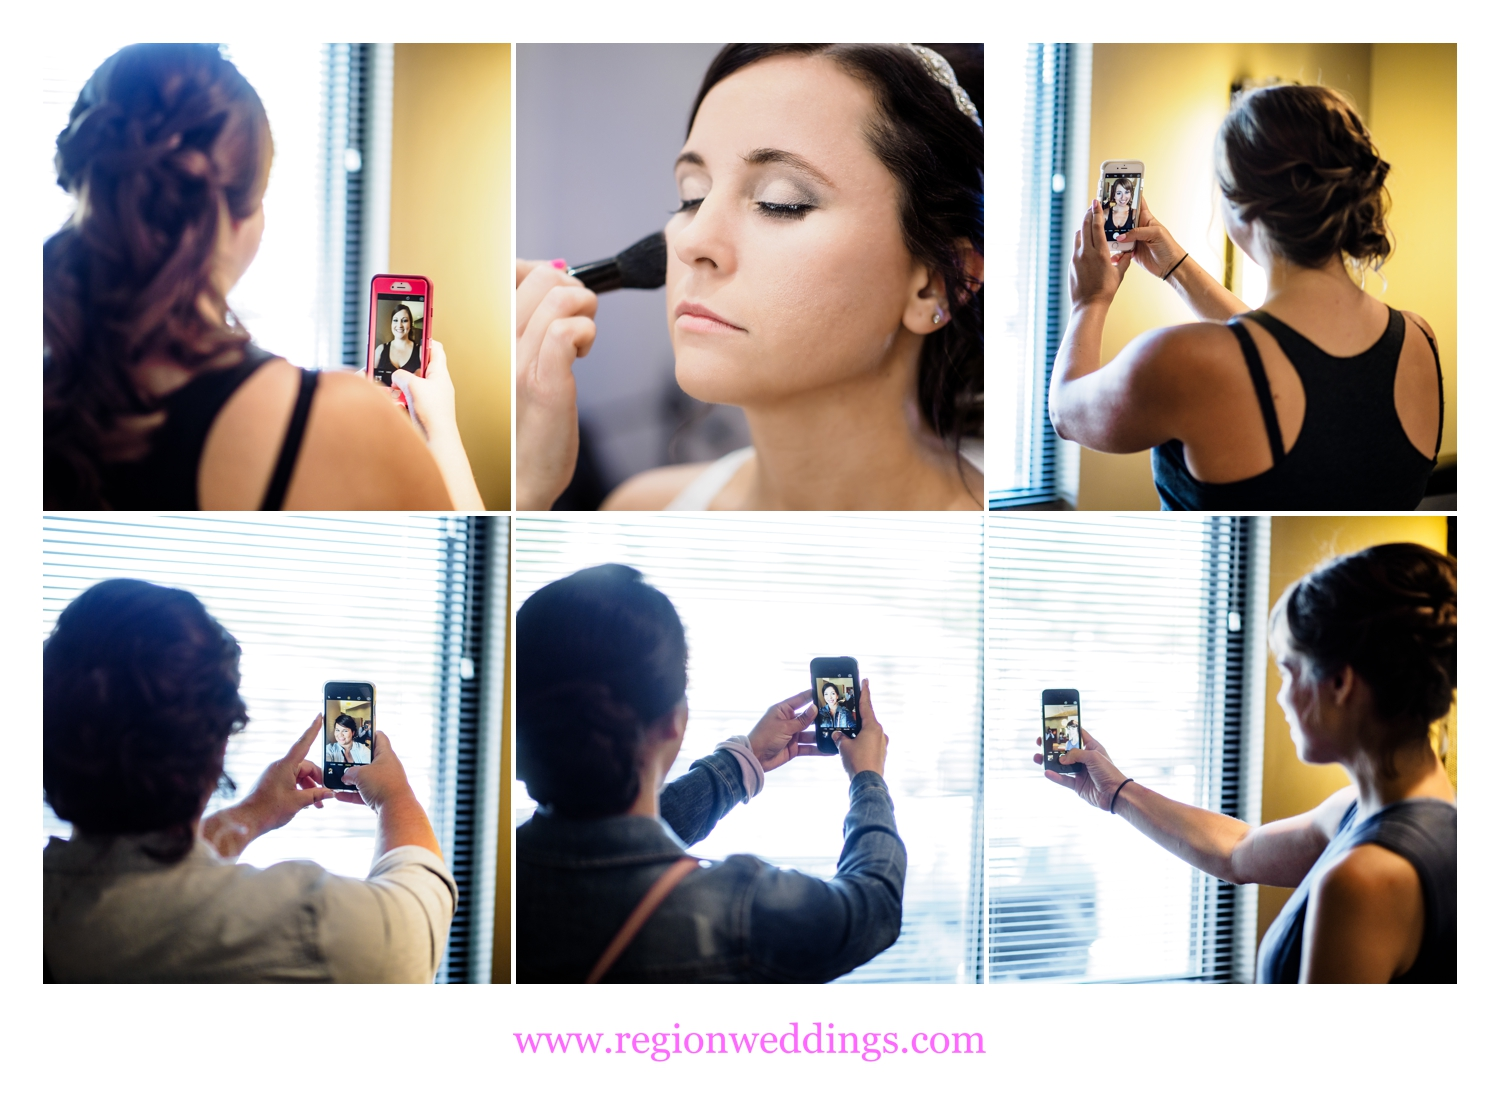 Wedding day selfies as the bride gets make up done at Vanis Salon in Valparaiso.